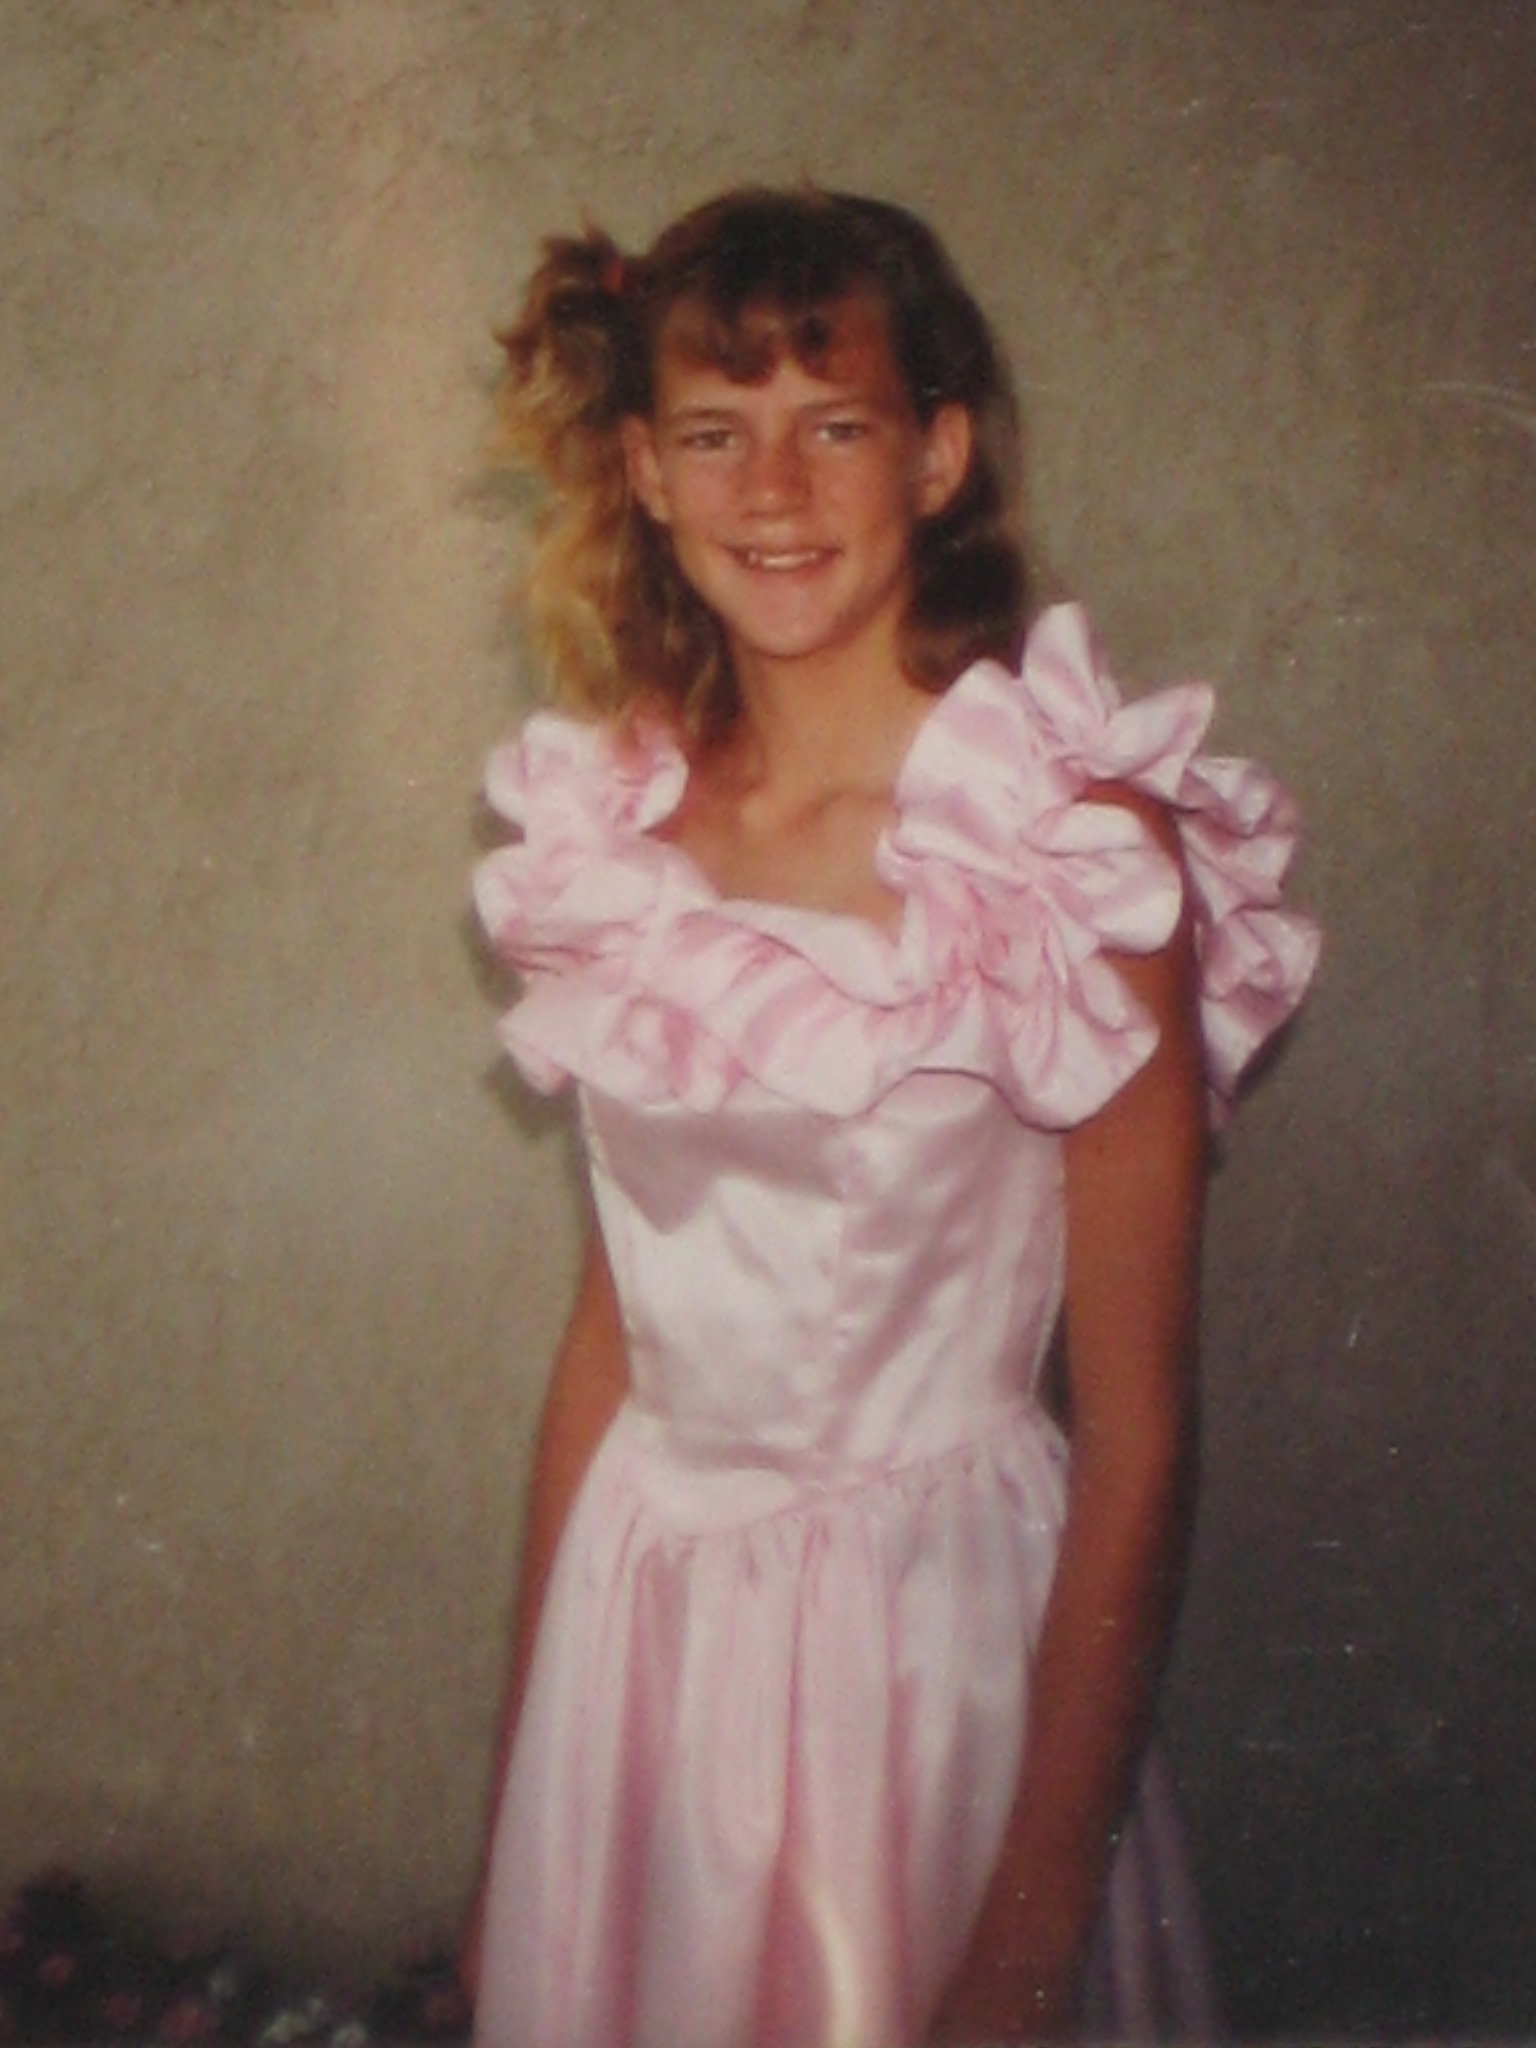 Me at my 8th grade graduation in 1987.